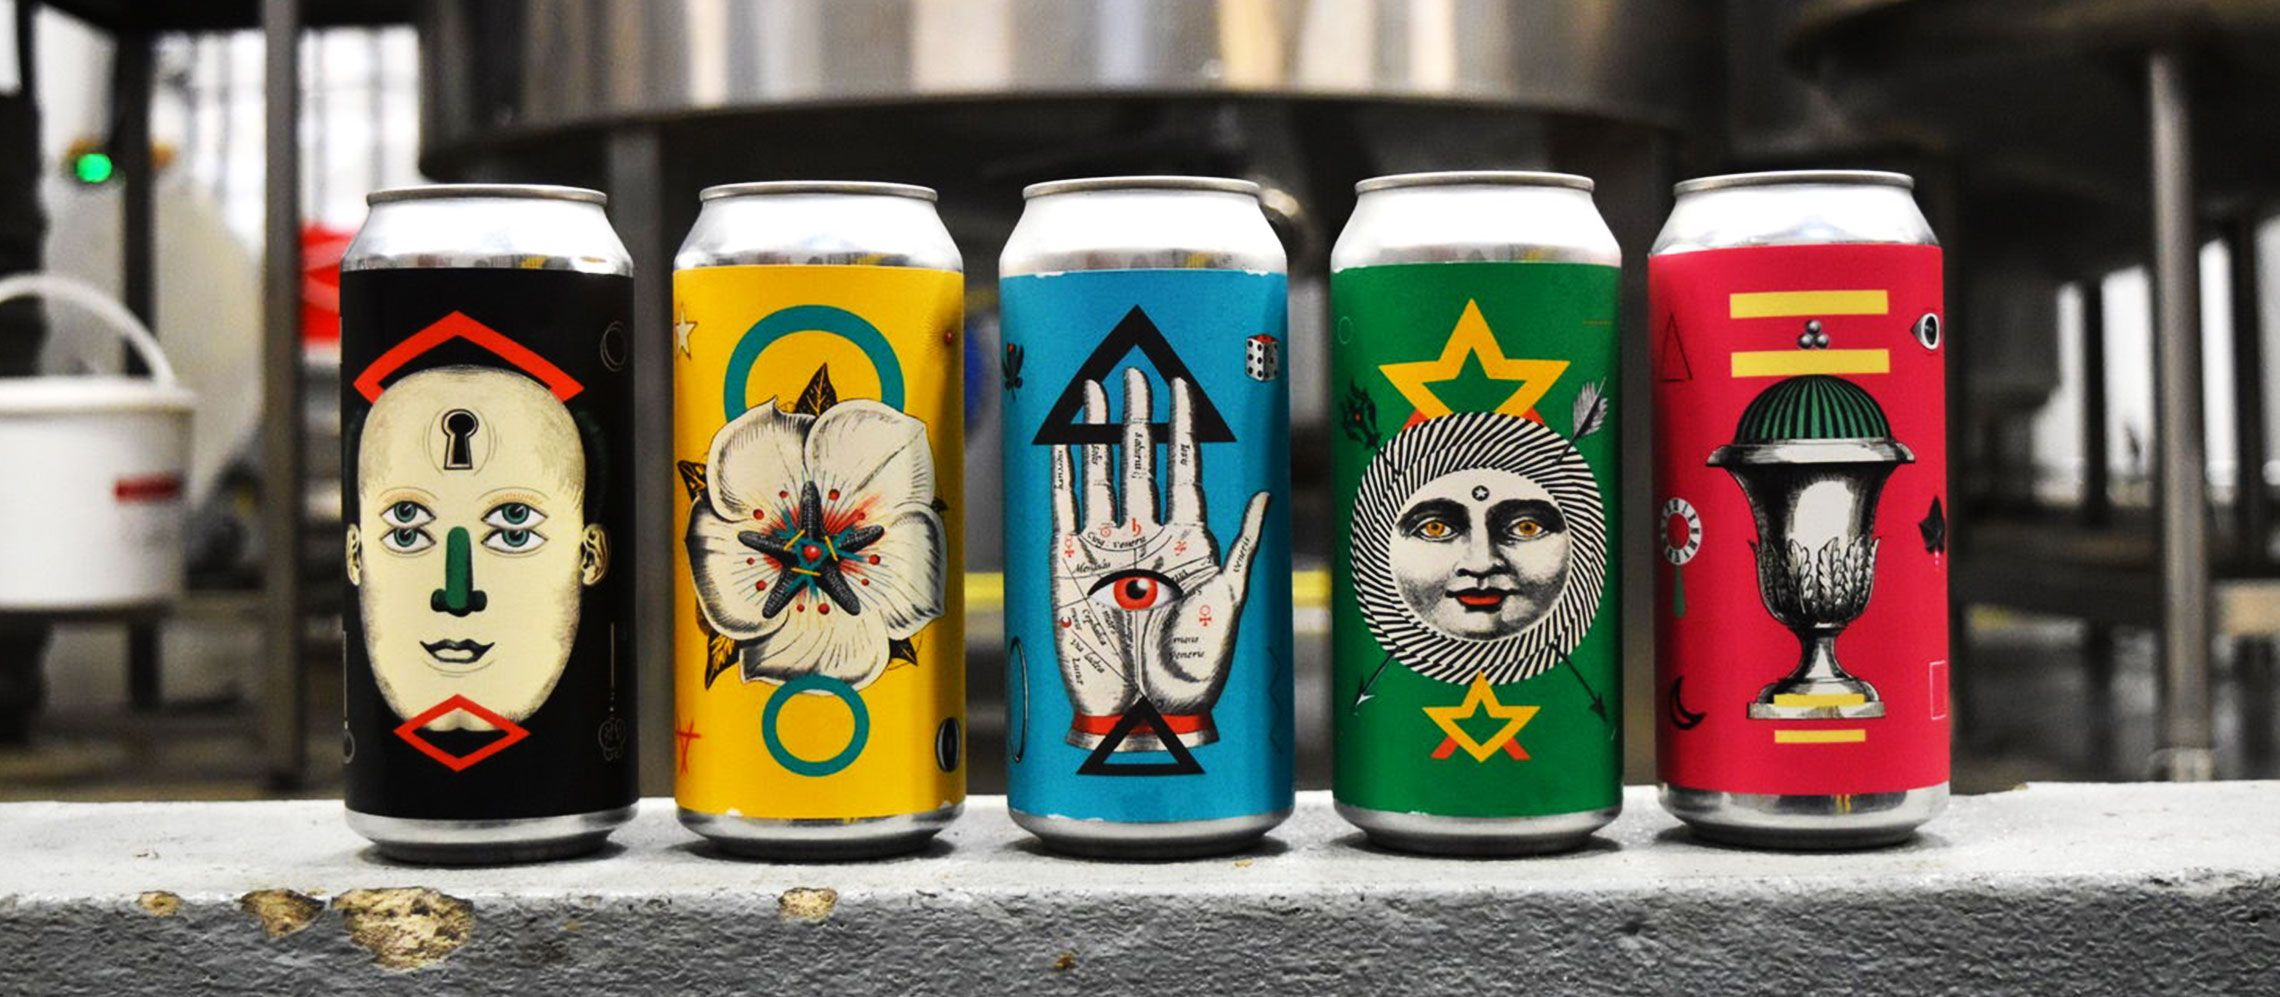 Photo for: Meet The 2020 Best Beer By Packaging